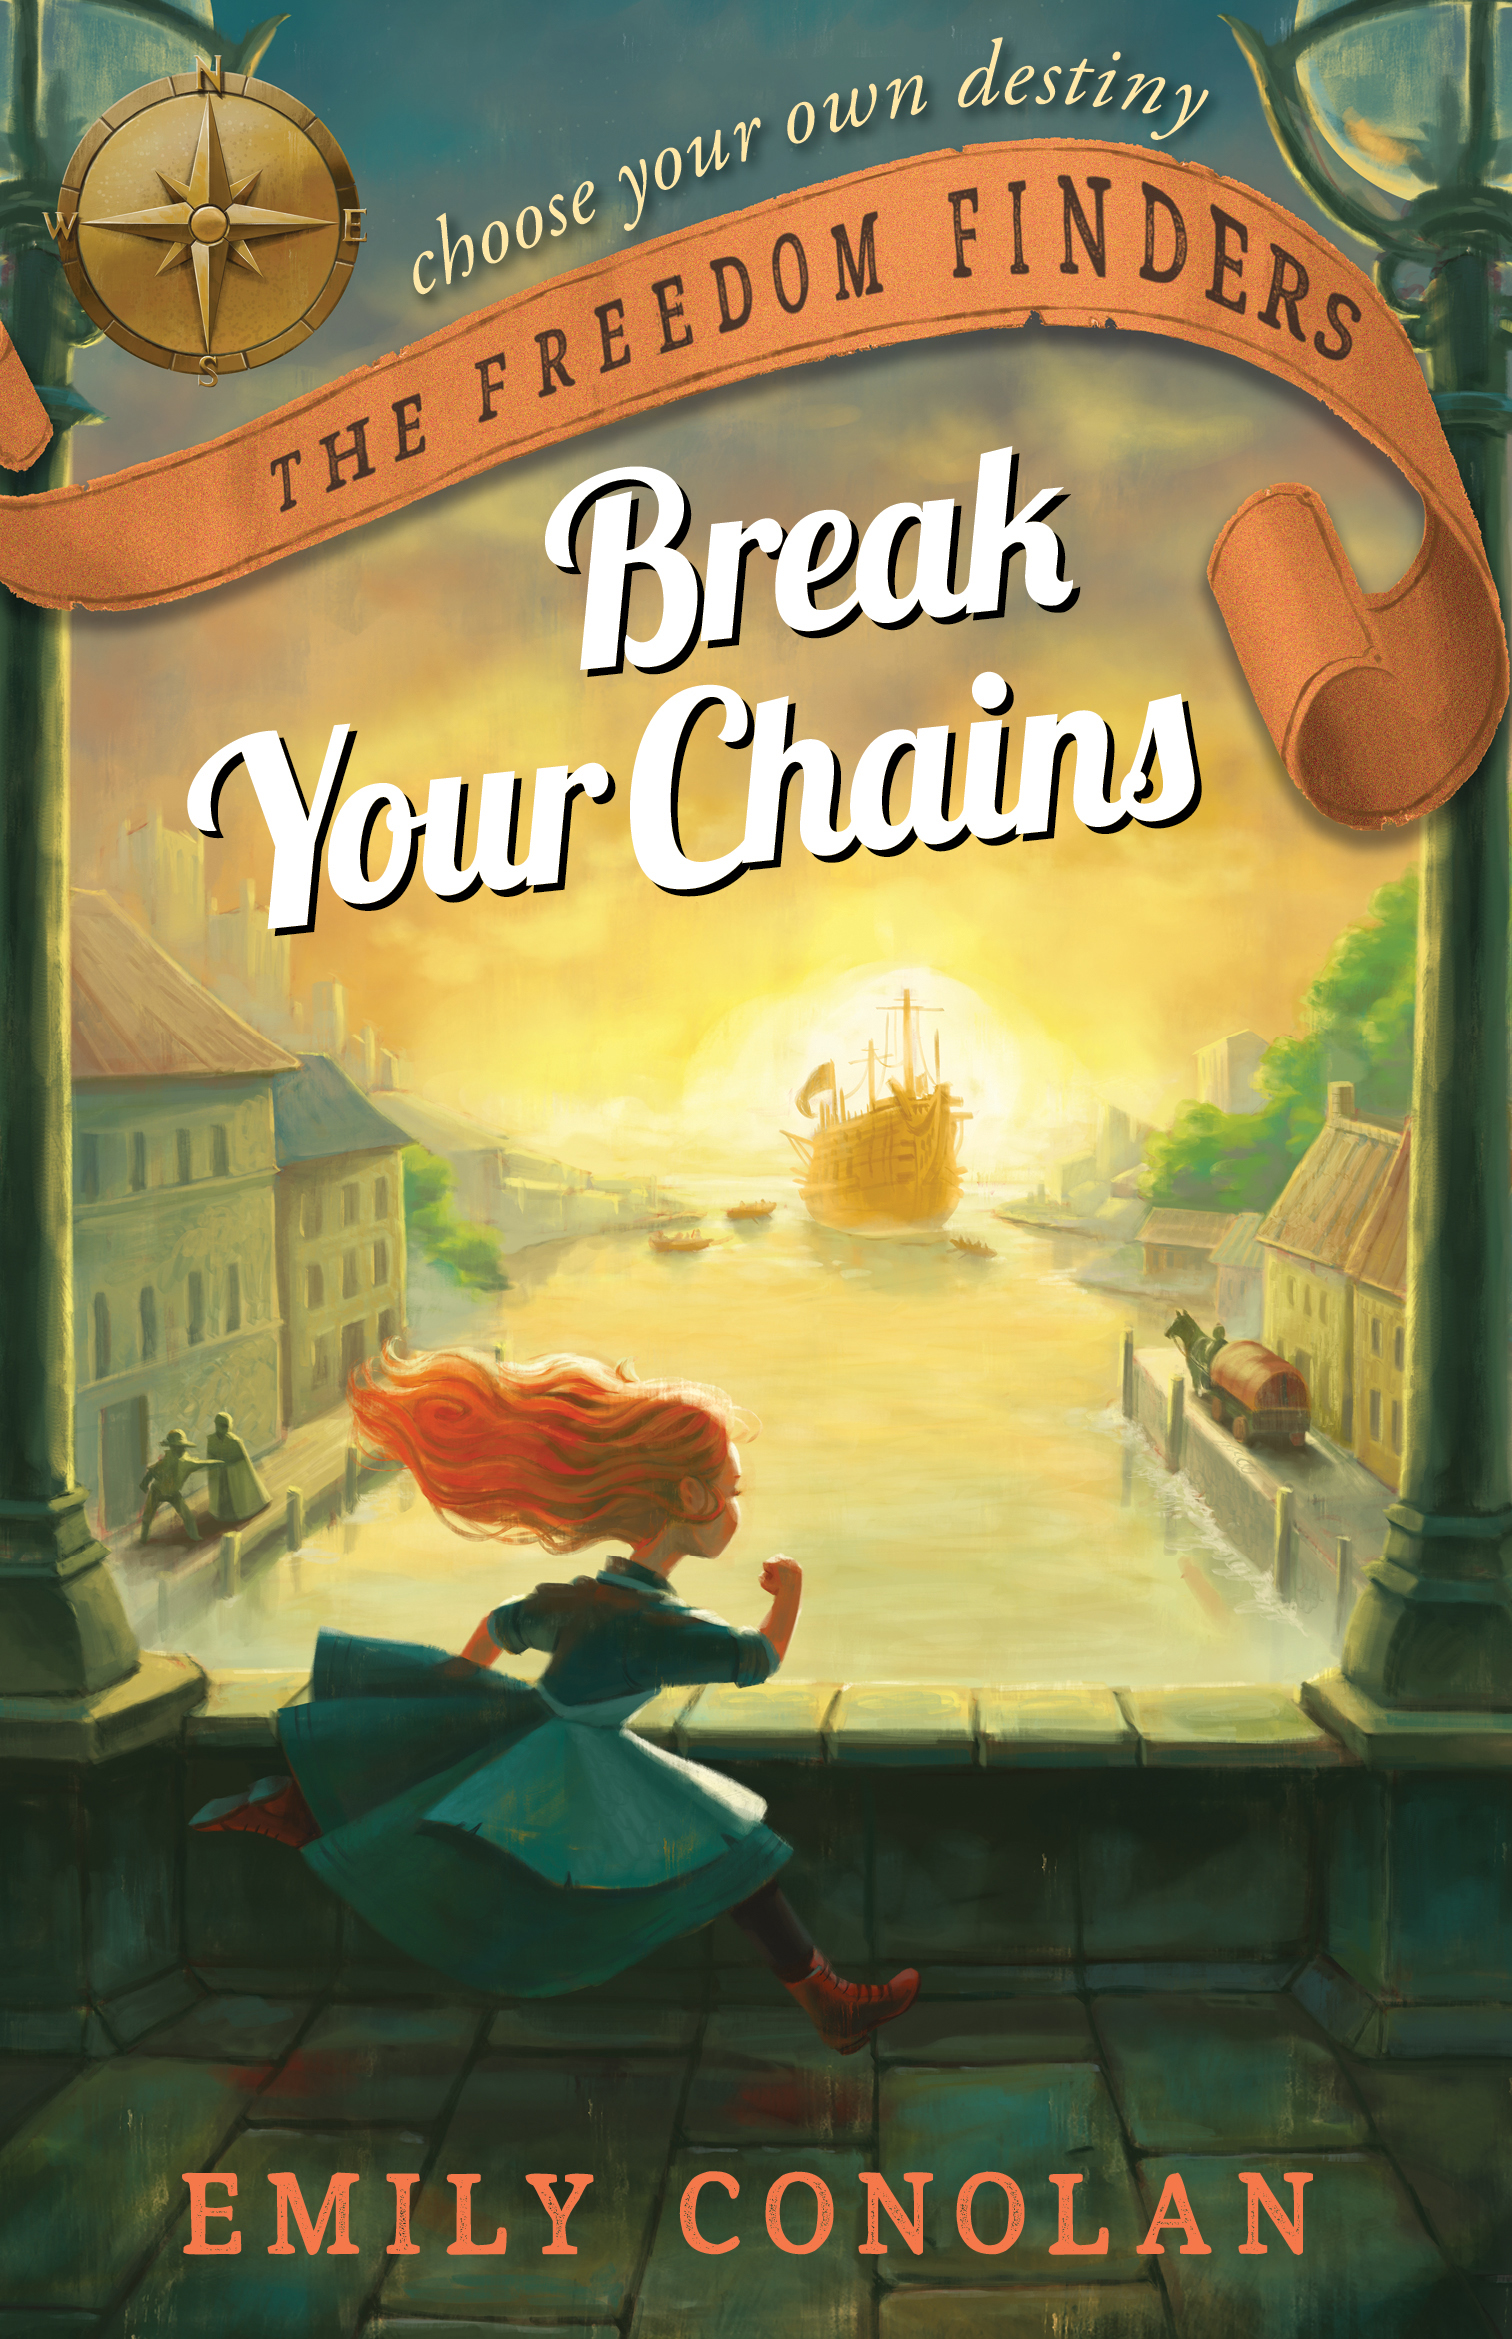 Break Your Chainsby Emily Conolan